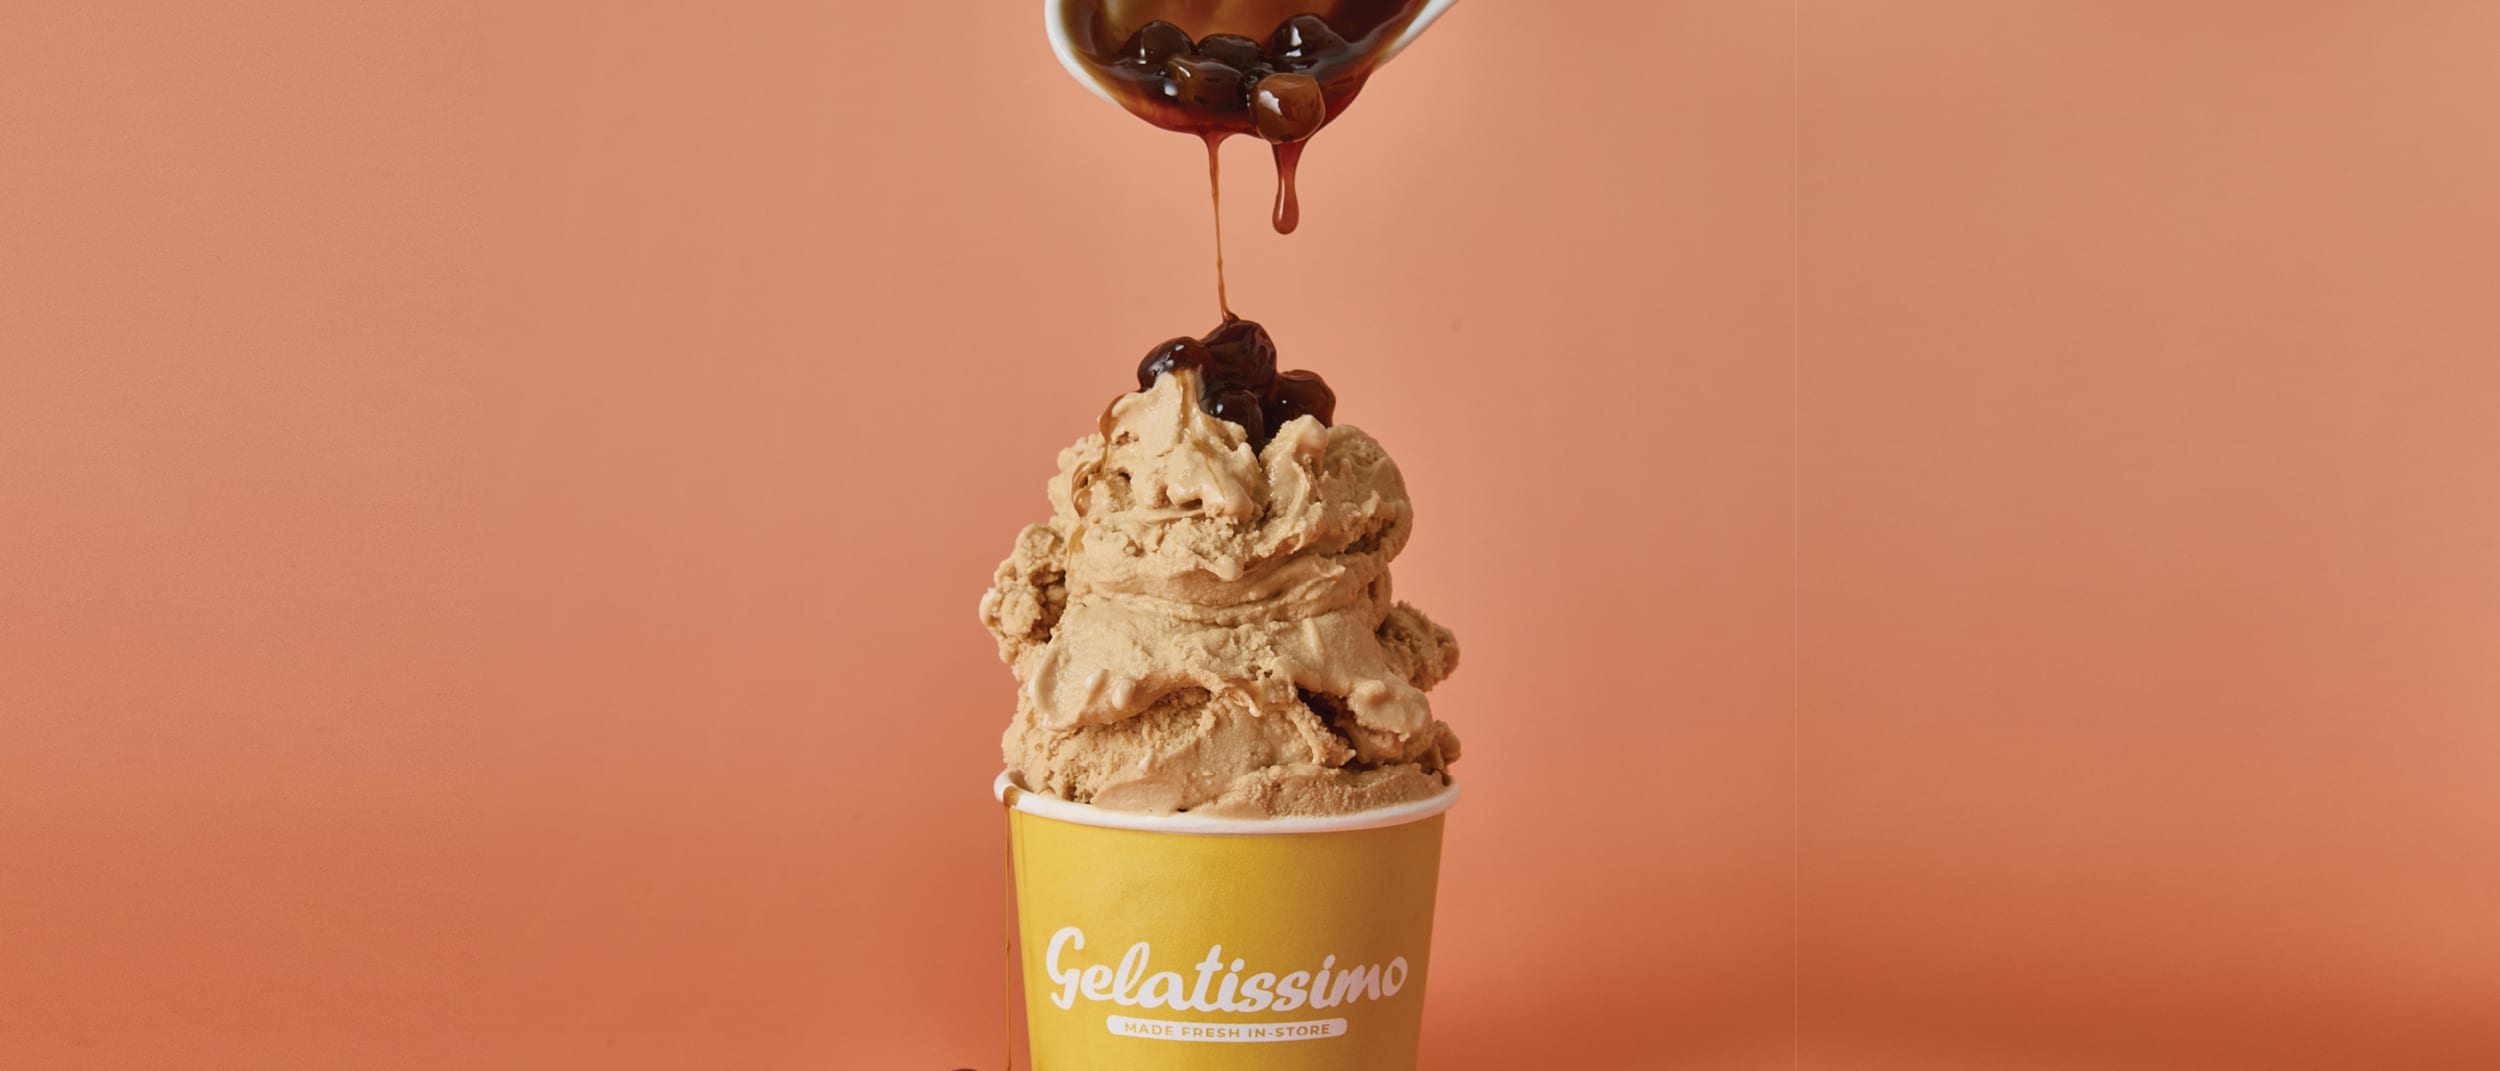 Gelatissimo: New Brown Sugar Bubble Milk Tea Gelato